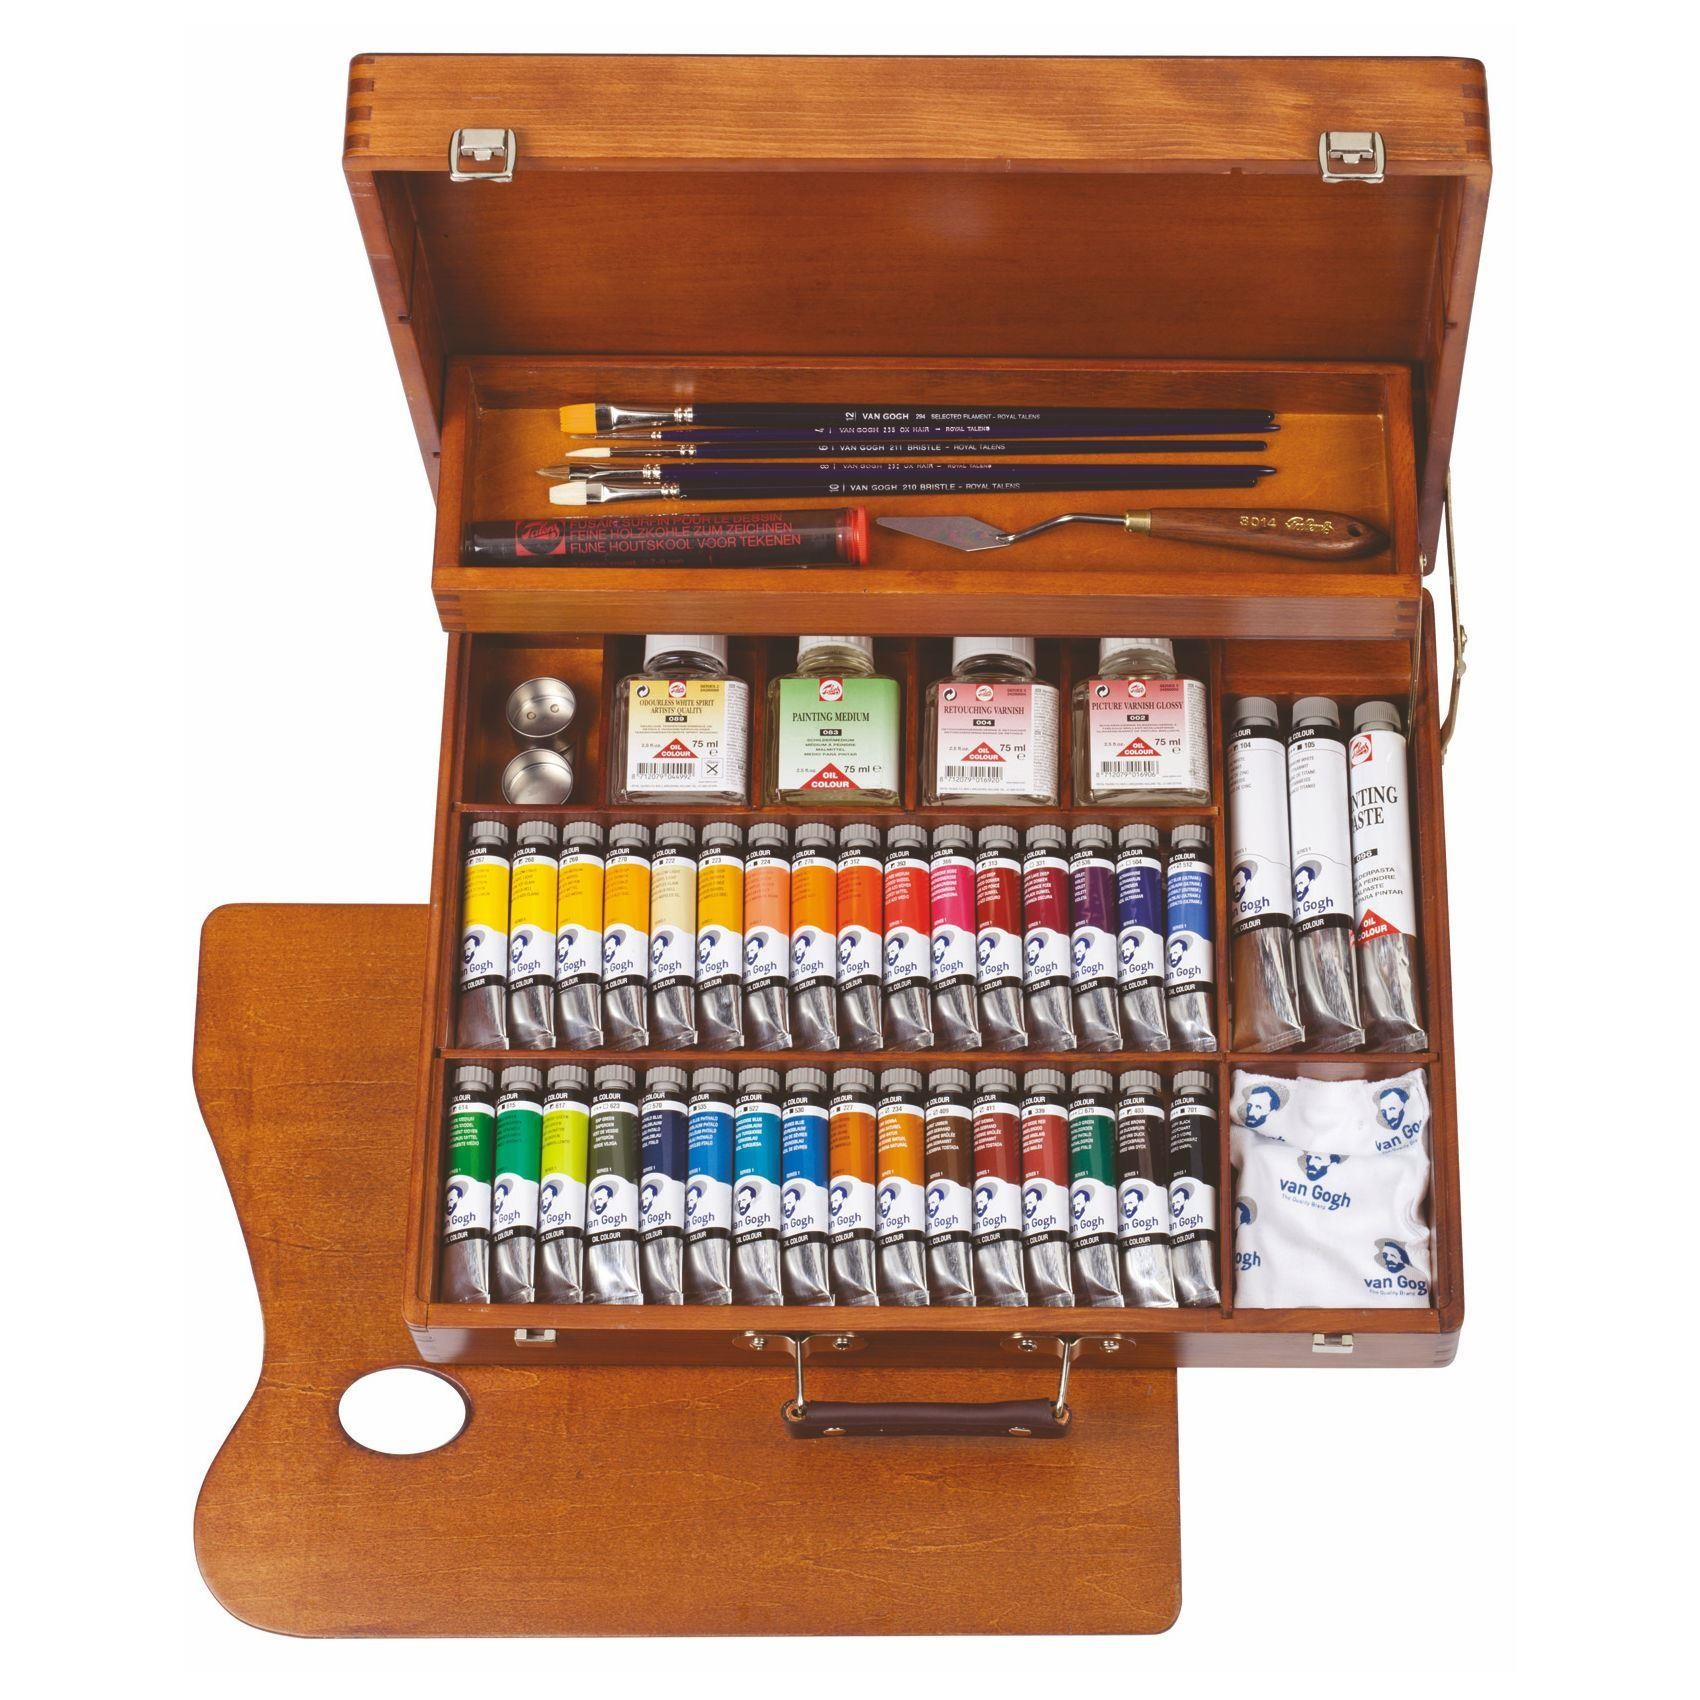 Van Gogh oil colour paint superior wooden gift box set